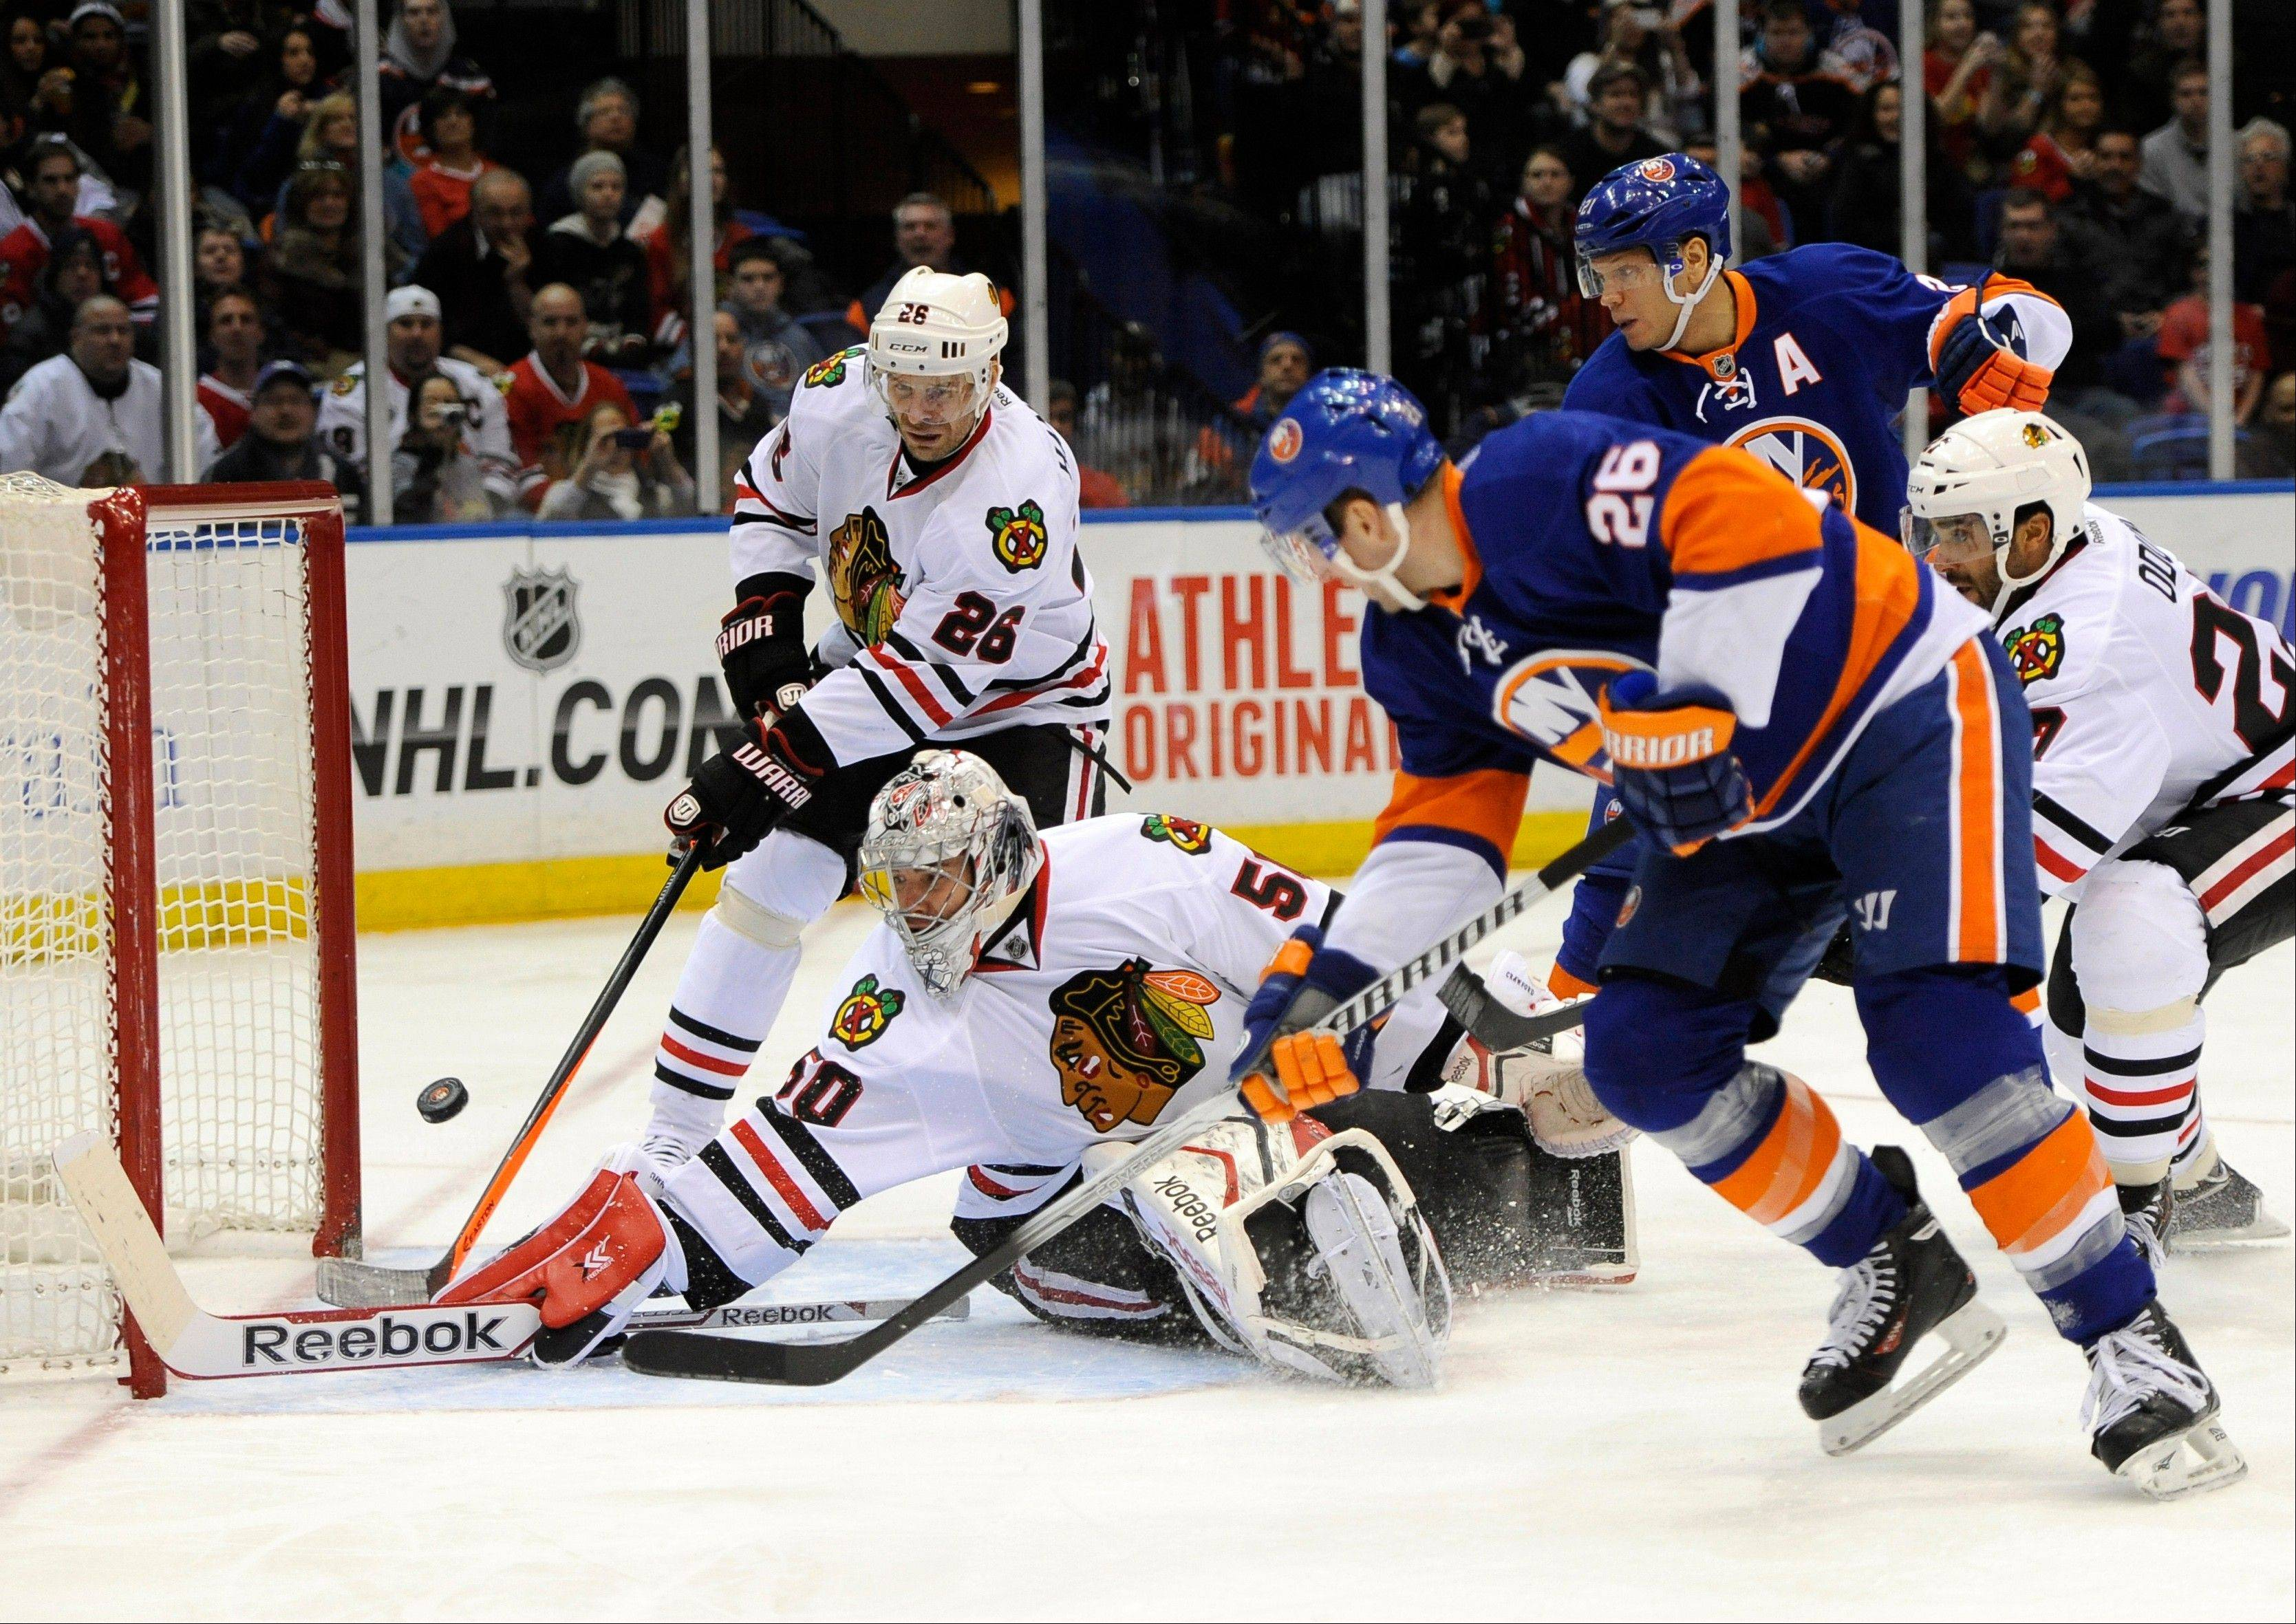 New York Islanders' Thomas Vanek, front right, shoots the puck past Chicago Blackhawks goalie Corey Crawford (50) as Blackhawks' Michal Handzus, back left, tries to defend in the second period of an NHL hockey game on Thursday, Jan. 2, 2014, in Uniondale, N.Y.